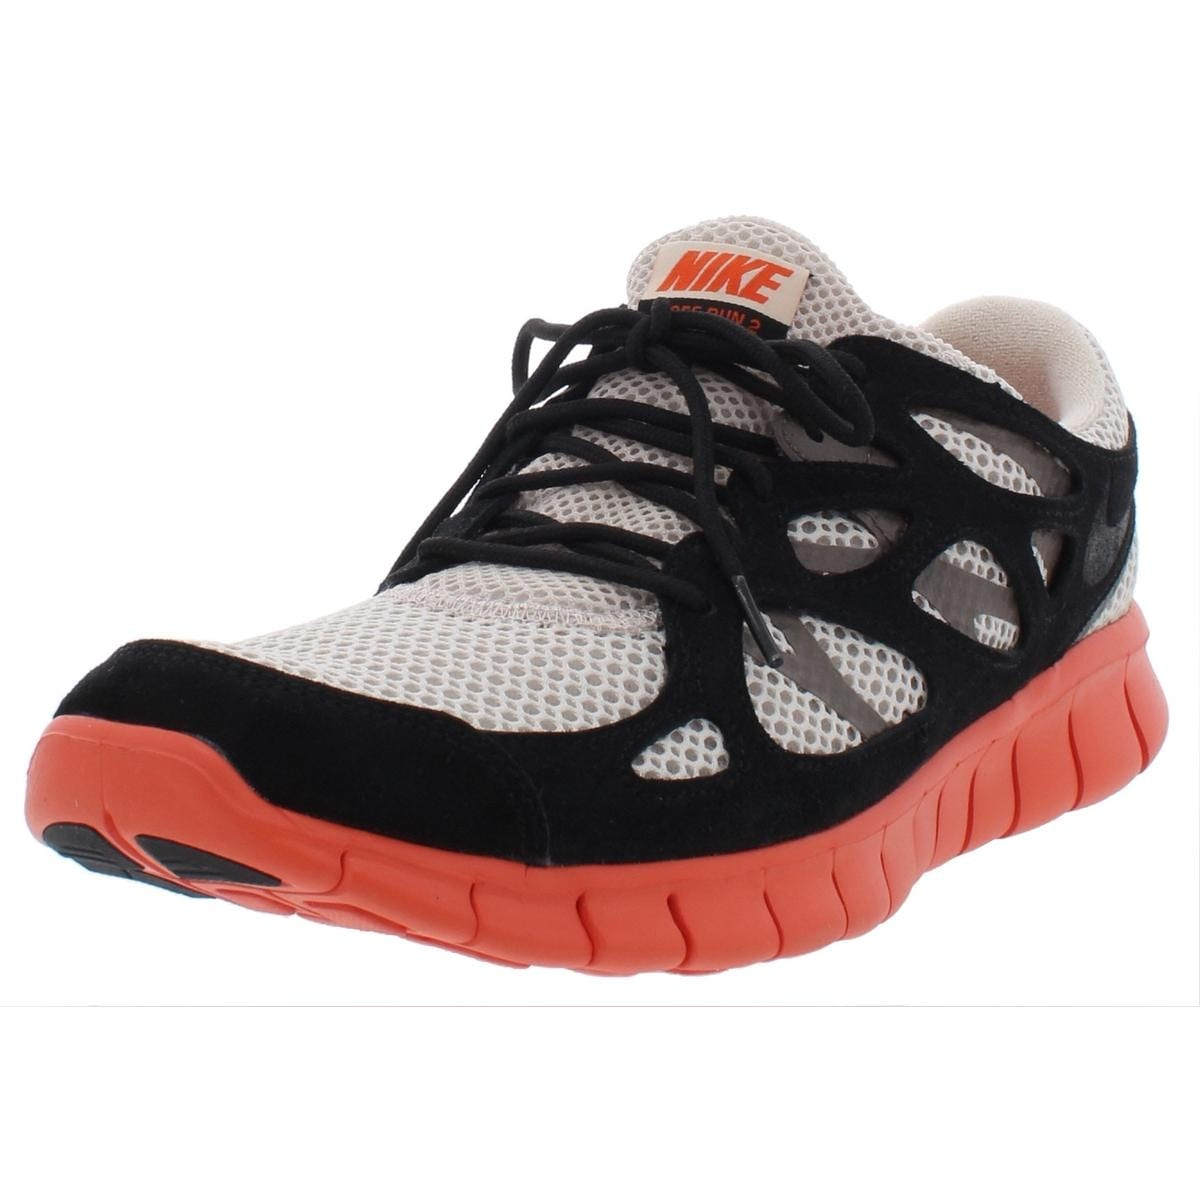 Los Angeles faa75 3d8f6 Nike Mens Nike Free Run 2 EXT Running Shoes Breathable Workout